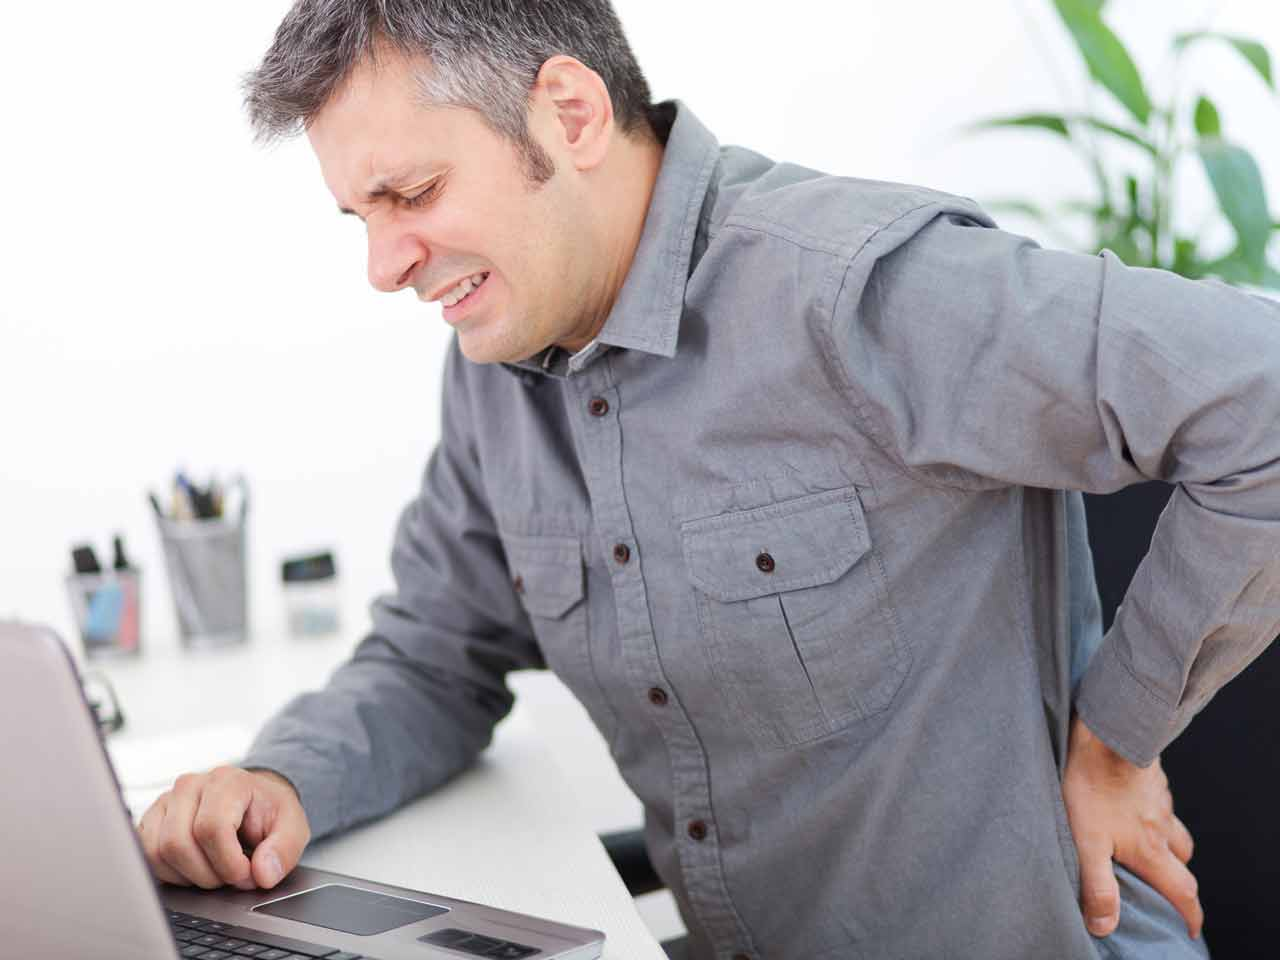 Office worker experiencing back pain